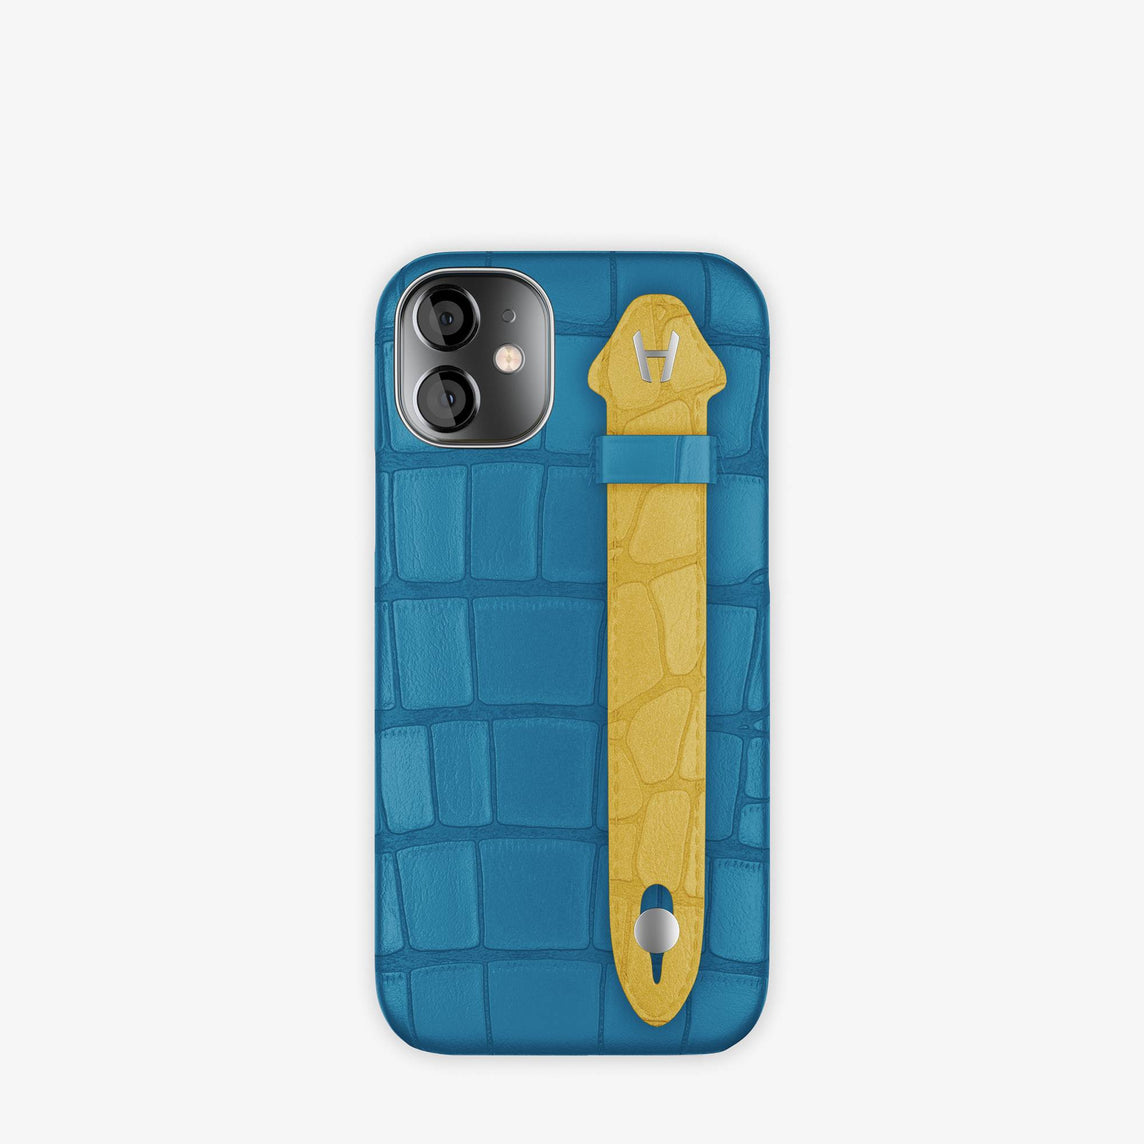 Alligator Side Finger Case iPhone 12 Mini | Blue Lagoon/Gold -Stainless Steel